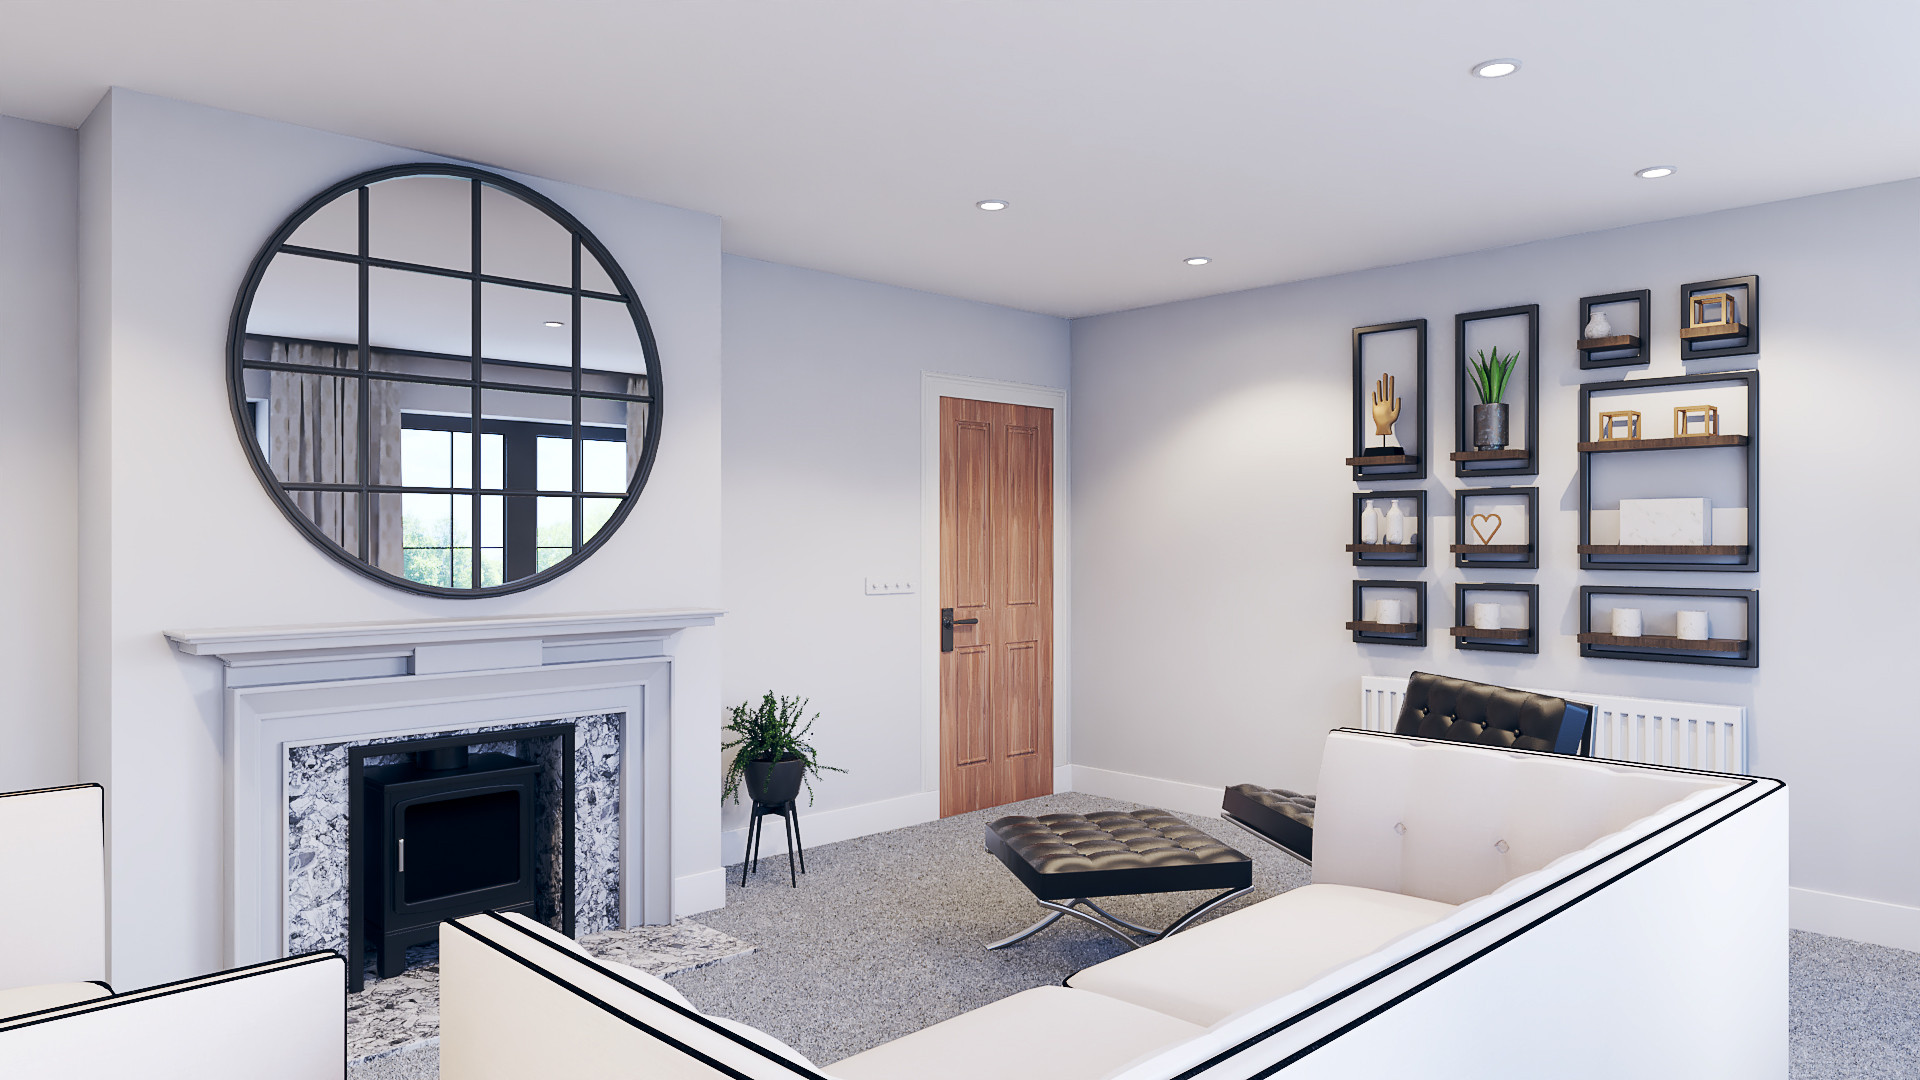 02_Blackwalls_formal_sitting_room_1.jpg